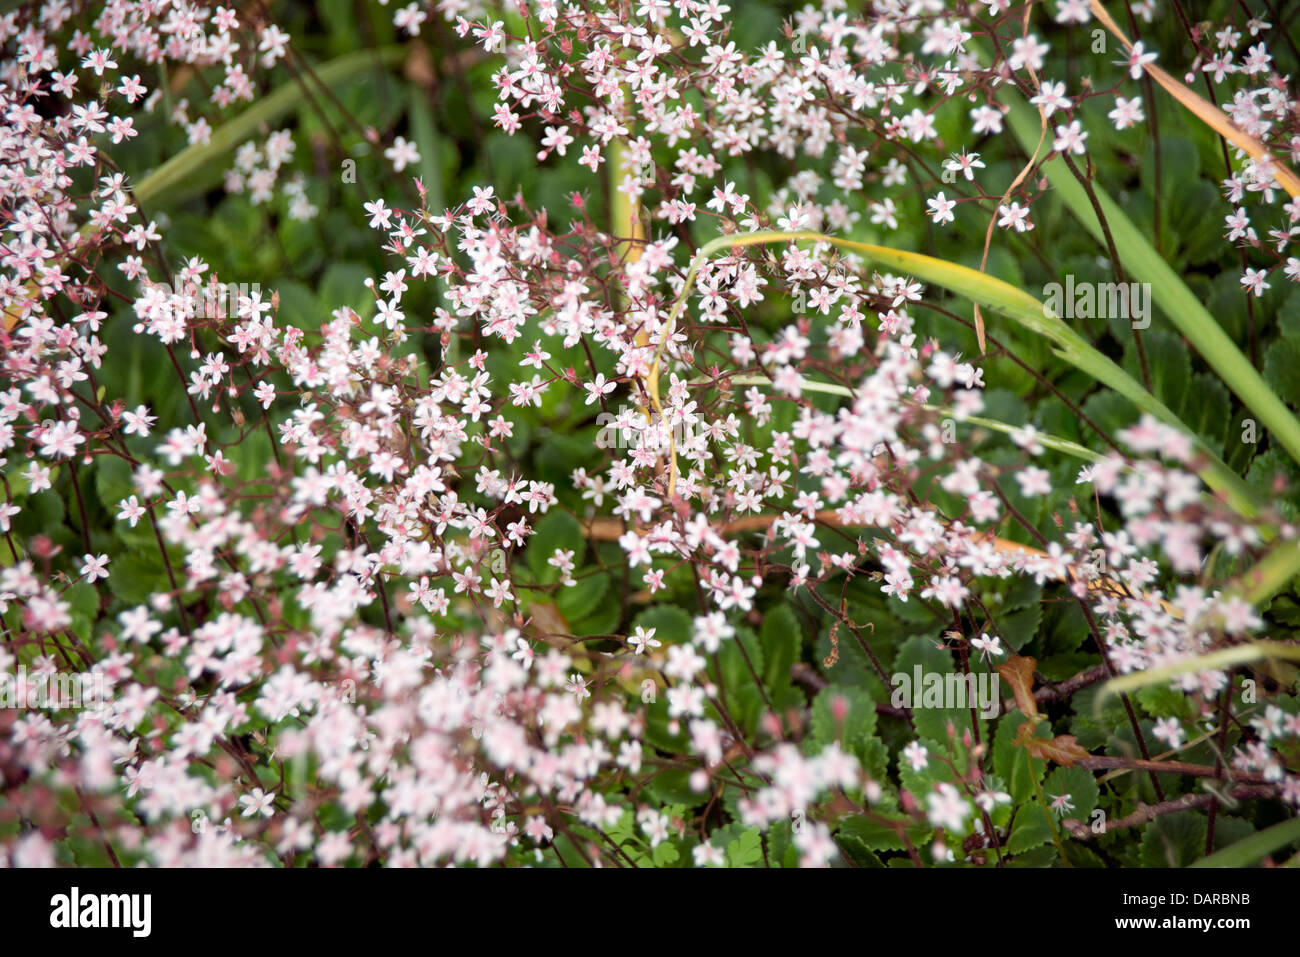 Tiny pink flowers stock photos tiny pink flowers stock images alamy hundreds of tiny pink white flowers against a green leafy background stock image mightylinksfo